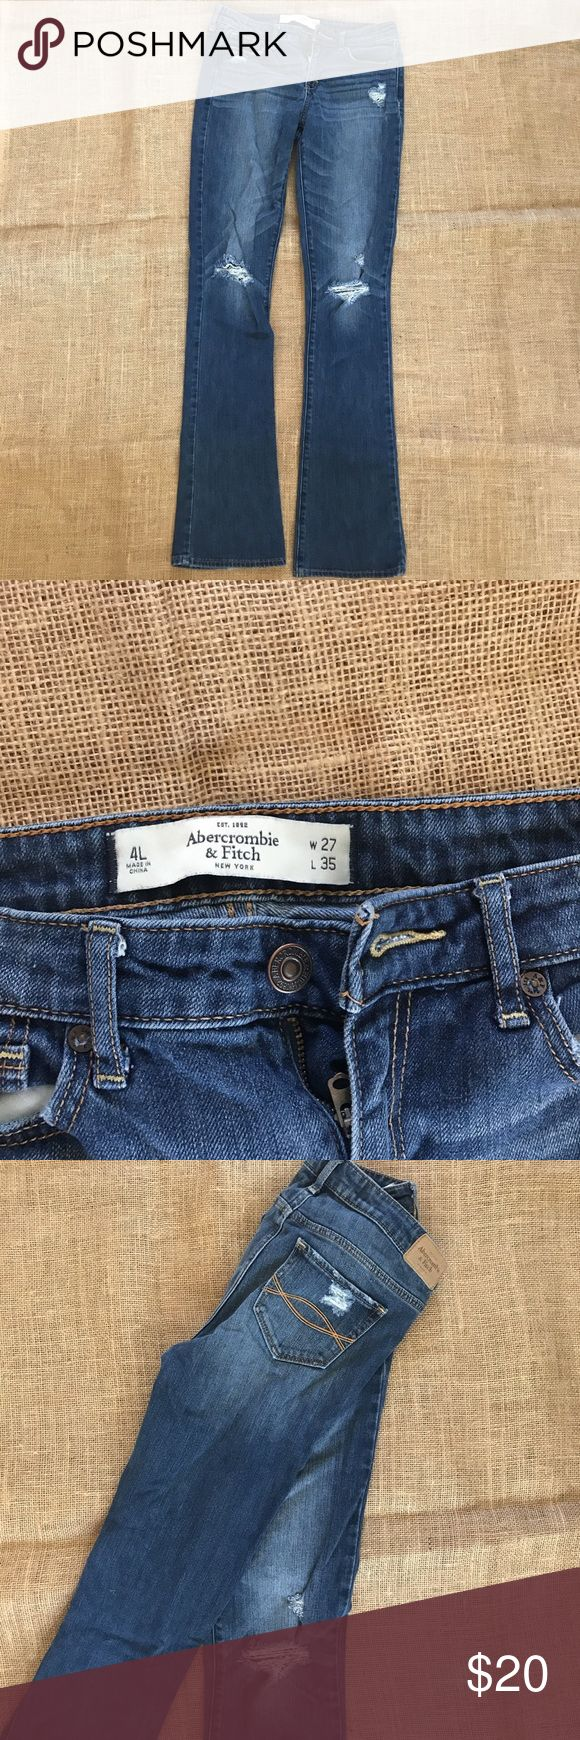 Abercrombie and Fitch Boot Cut Jeans Boot cut jeans with rips in the knees. Size 4L W: 27 L: 35 Abercrombie & Fitch Jeans Boot Cut